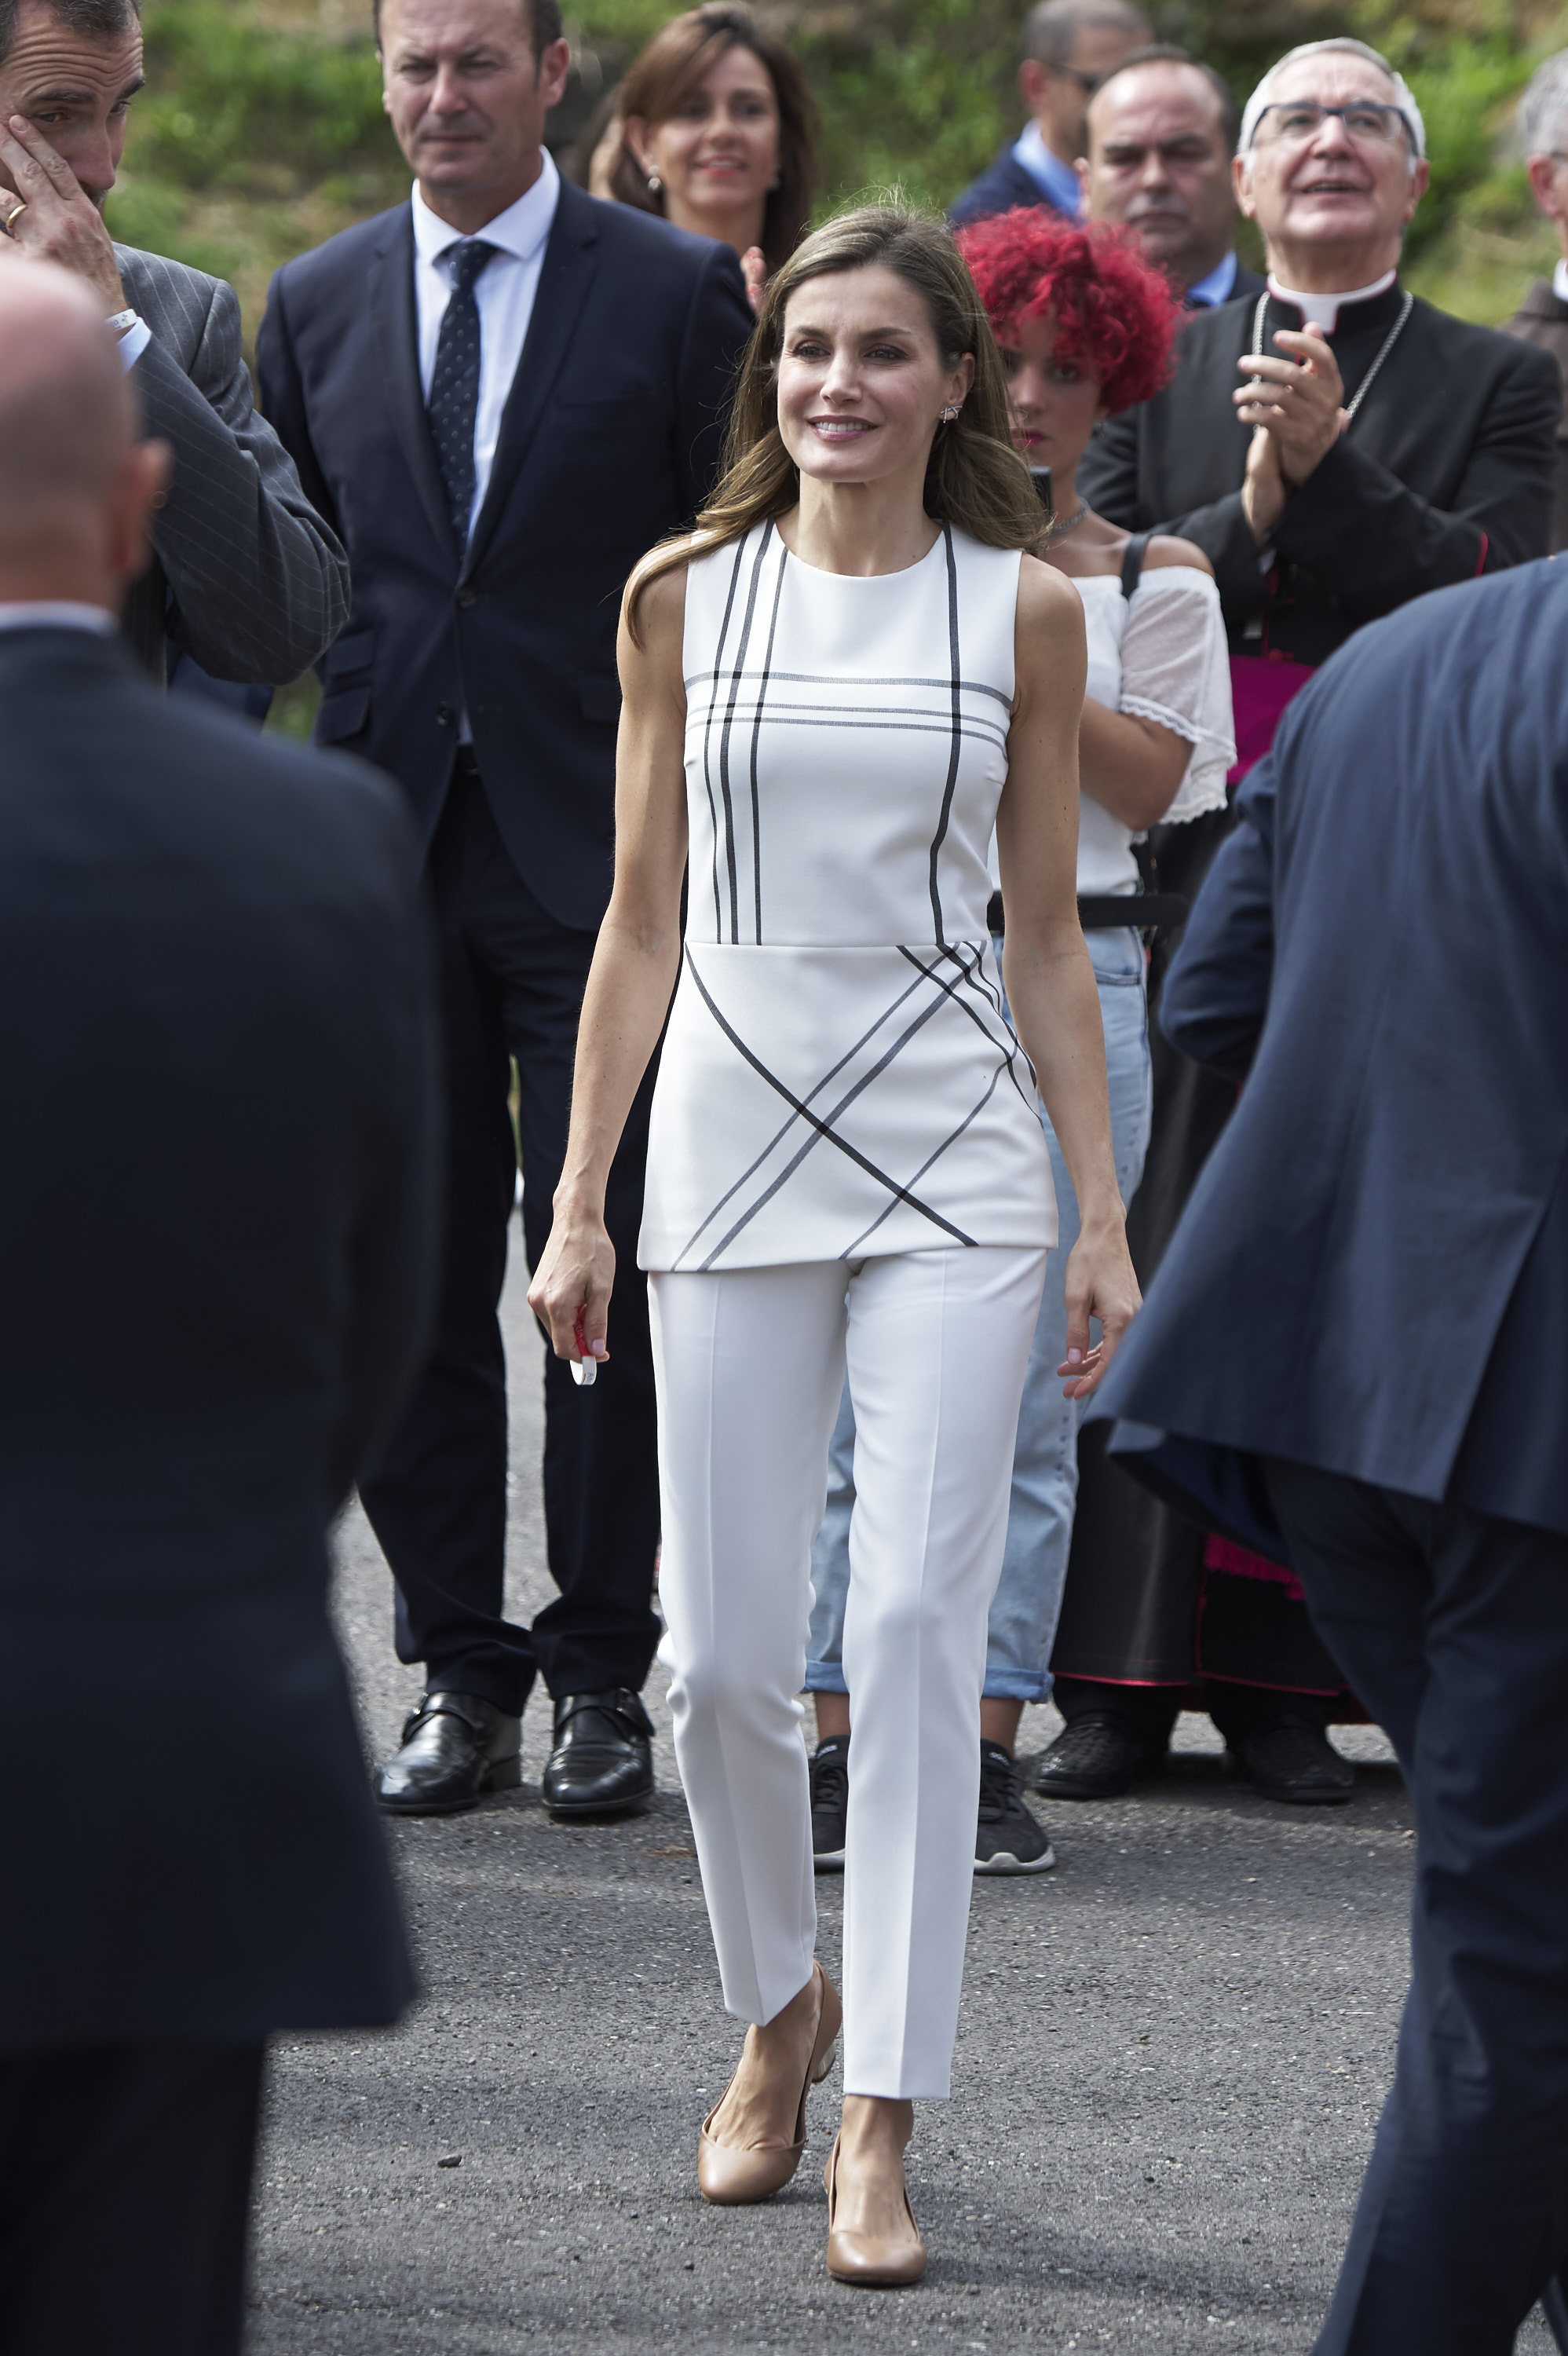 <p>After dazzling the royal family on a state visit to the UK last week, Queen Letizia of Spain is back on home soil and marking her territory with head-turning fashion once more. </p> <p>Appearing at the Santo Toribio de Liebana Monastery in Camaleno with her husband King Felipe VI, Letizia stepped out in a head-to-toe white outfit by Hugo Boss.</p> <p>The tailored cigarette pants and tunic top with a light check motif have been worn before by the Spanish Queen, she donned the designer top last year in Madrid at the 2016 Accion Awards in September.</p> <p>And it's not just Letizia's ability to recycle outfits that are part of her sartorial appeal.</p> <p>Burberry, Prada and Carolina Herrera are just some of the designer names the former newsreader donned during her recent trip to the UK which saw her stepping out in polished pencil skirts, fitted blouses and chic sun dresses.</p> <p>The Spanish Queen's ability to mix and match budget pieces from stores such as Zara and Mango with edgy couture attire has impressed fashion fans all over the world.<br> <br> Click through to see some of the recent fashion wins of Queen Letizia of Spain.</p>